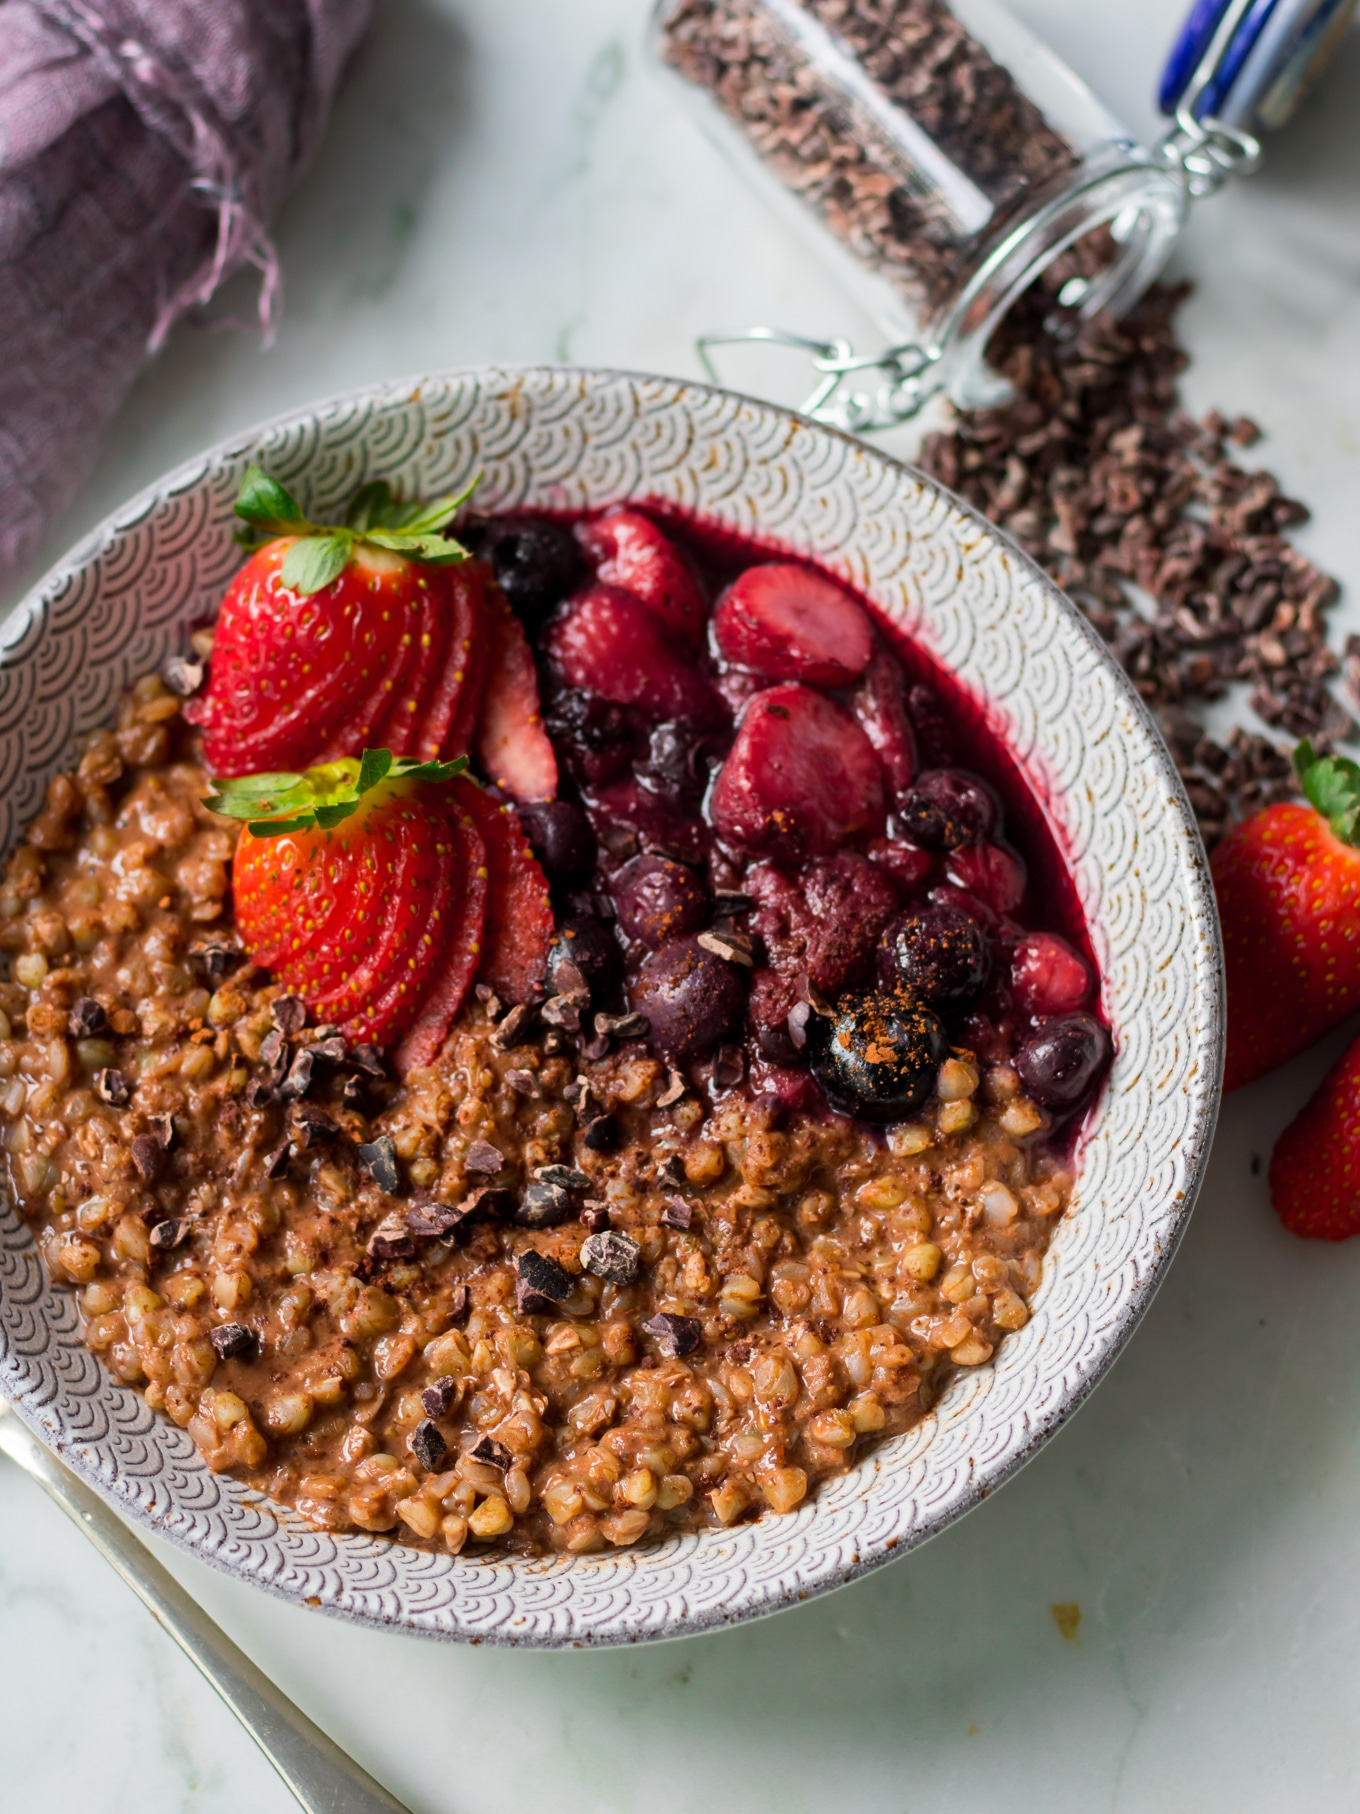 Angle view of chocolate buckwheat porridge in patterned bowl, scattered cacao nibs, berries on top